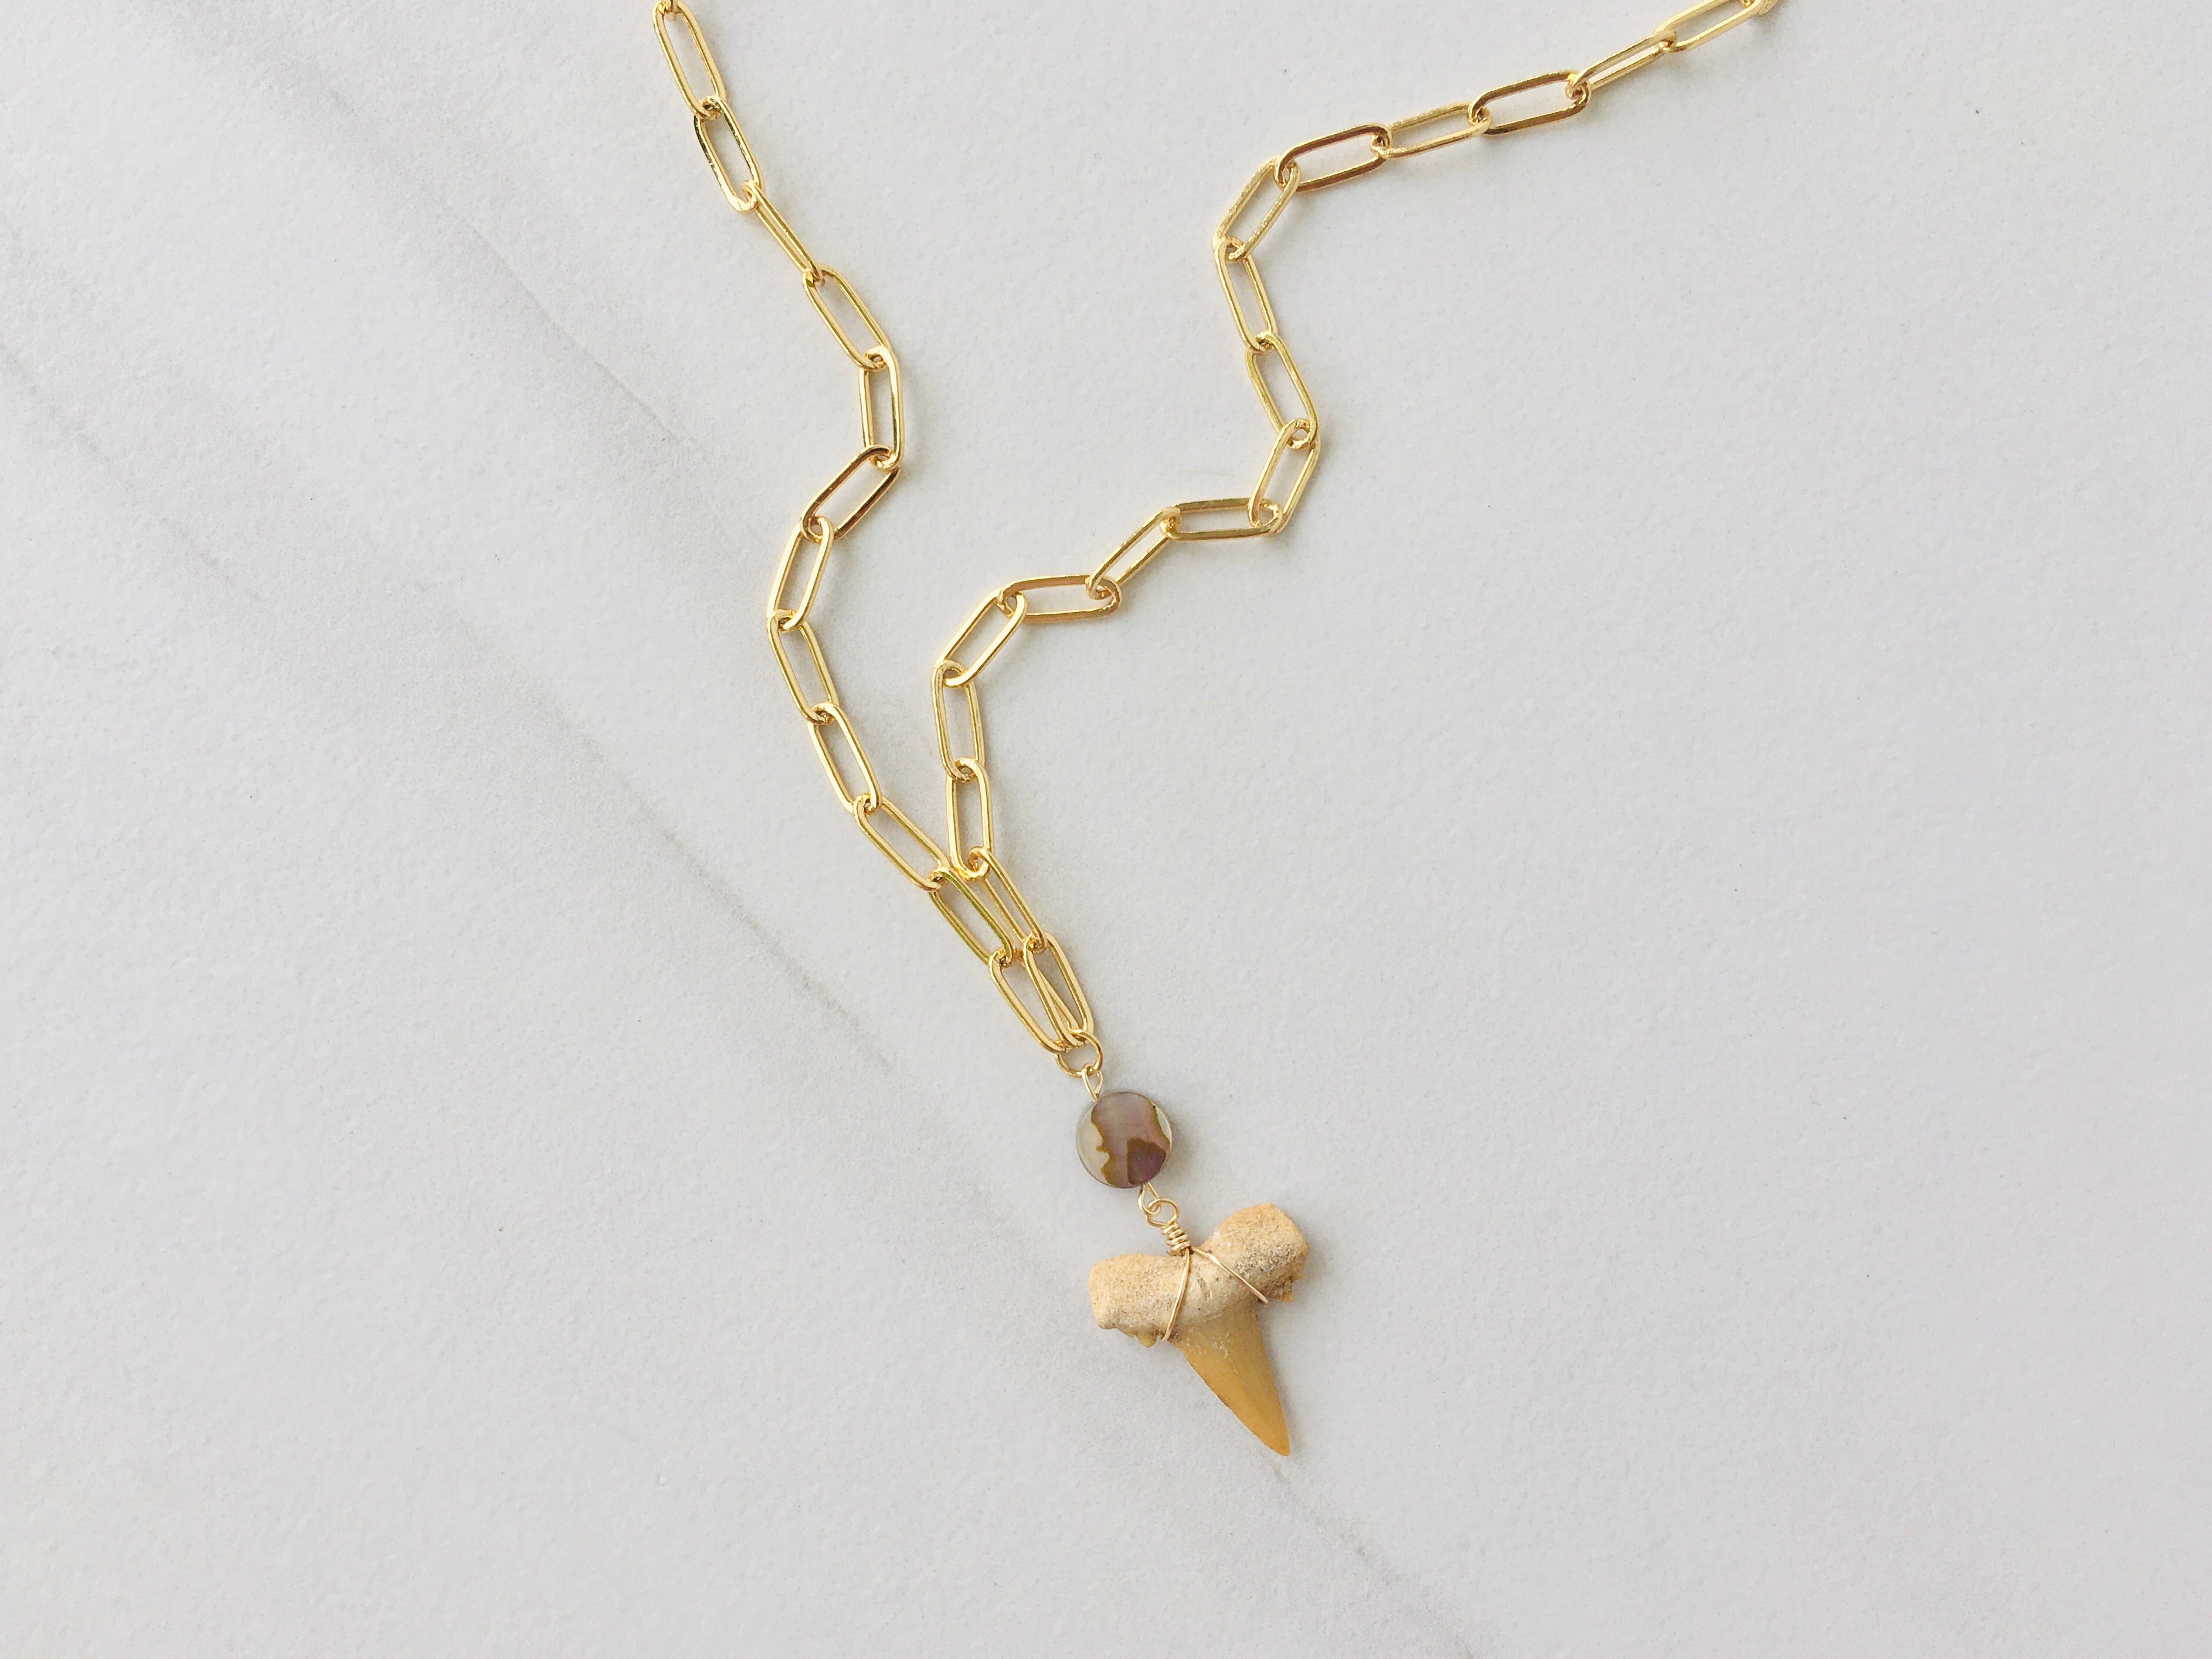 Atlantic Ocean Necklace